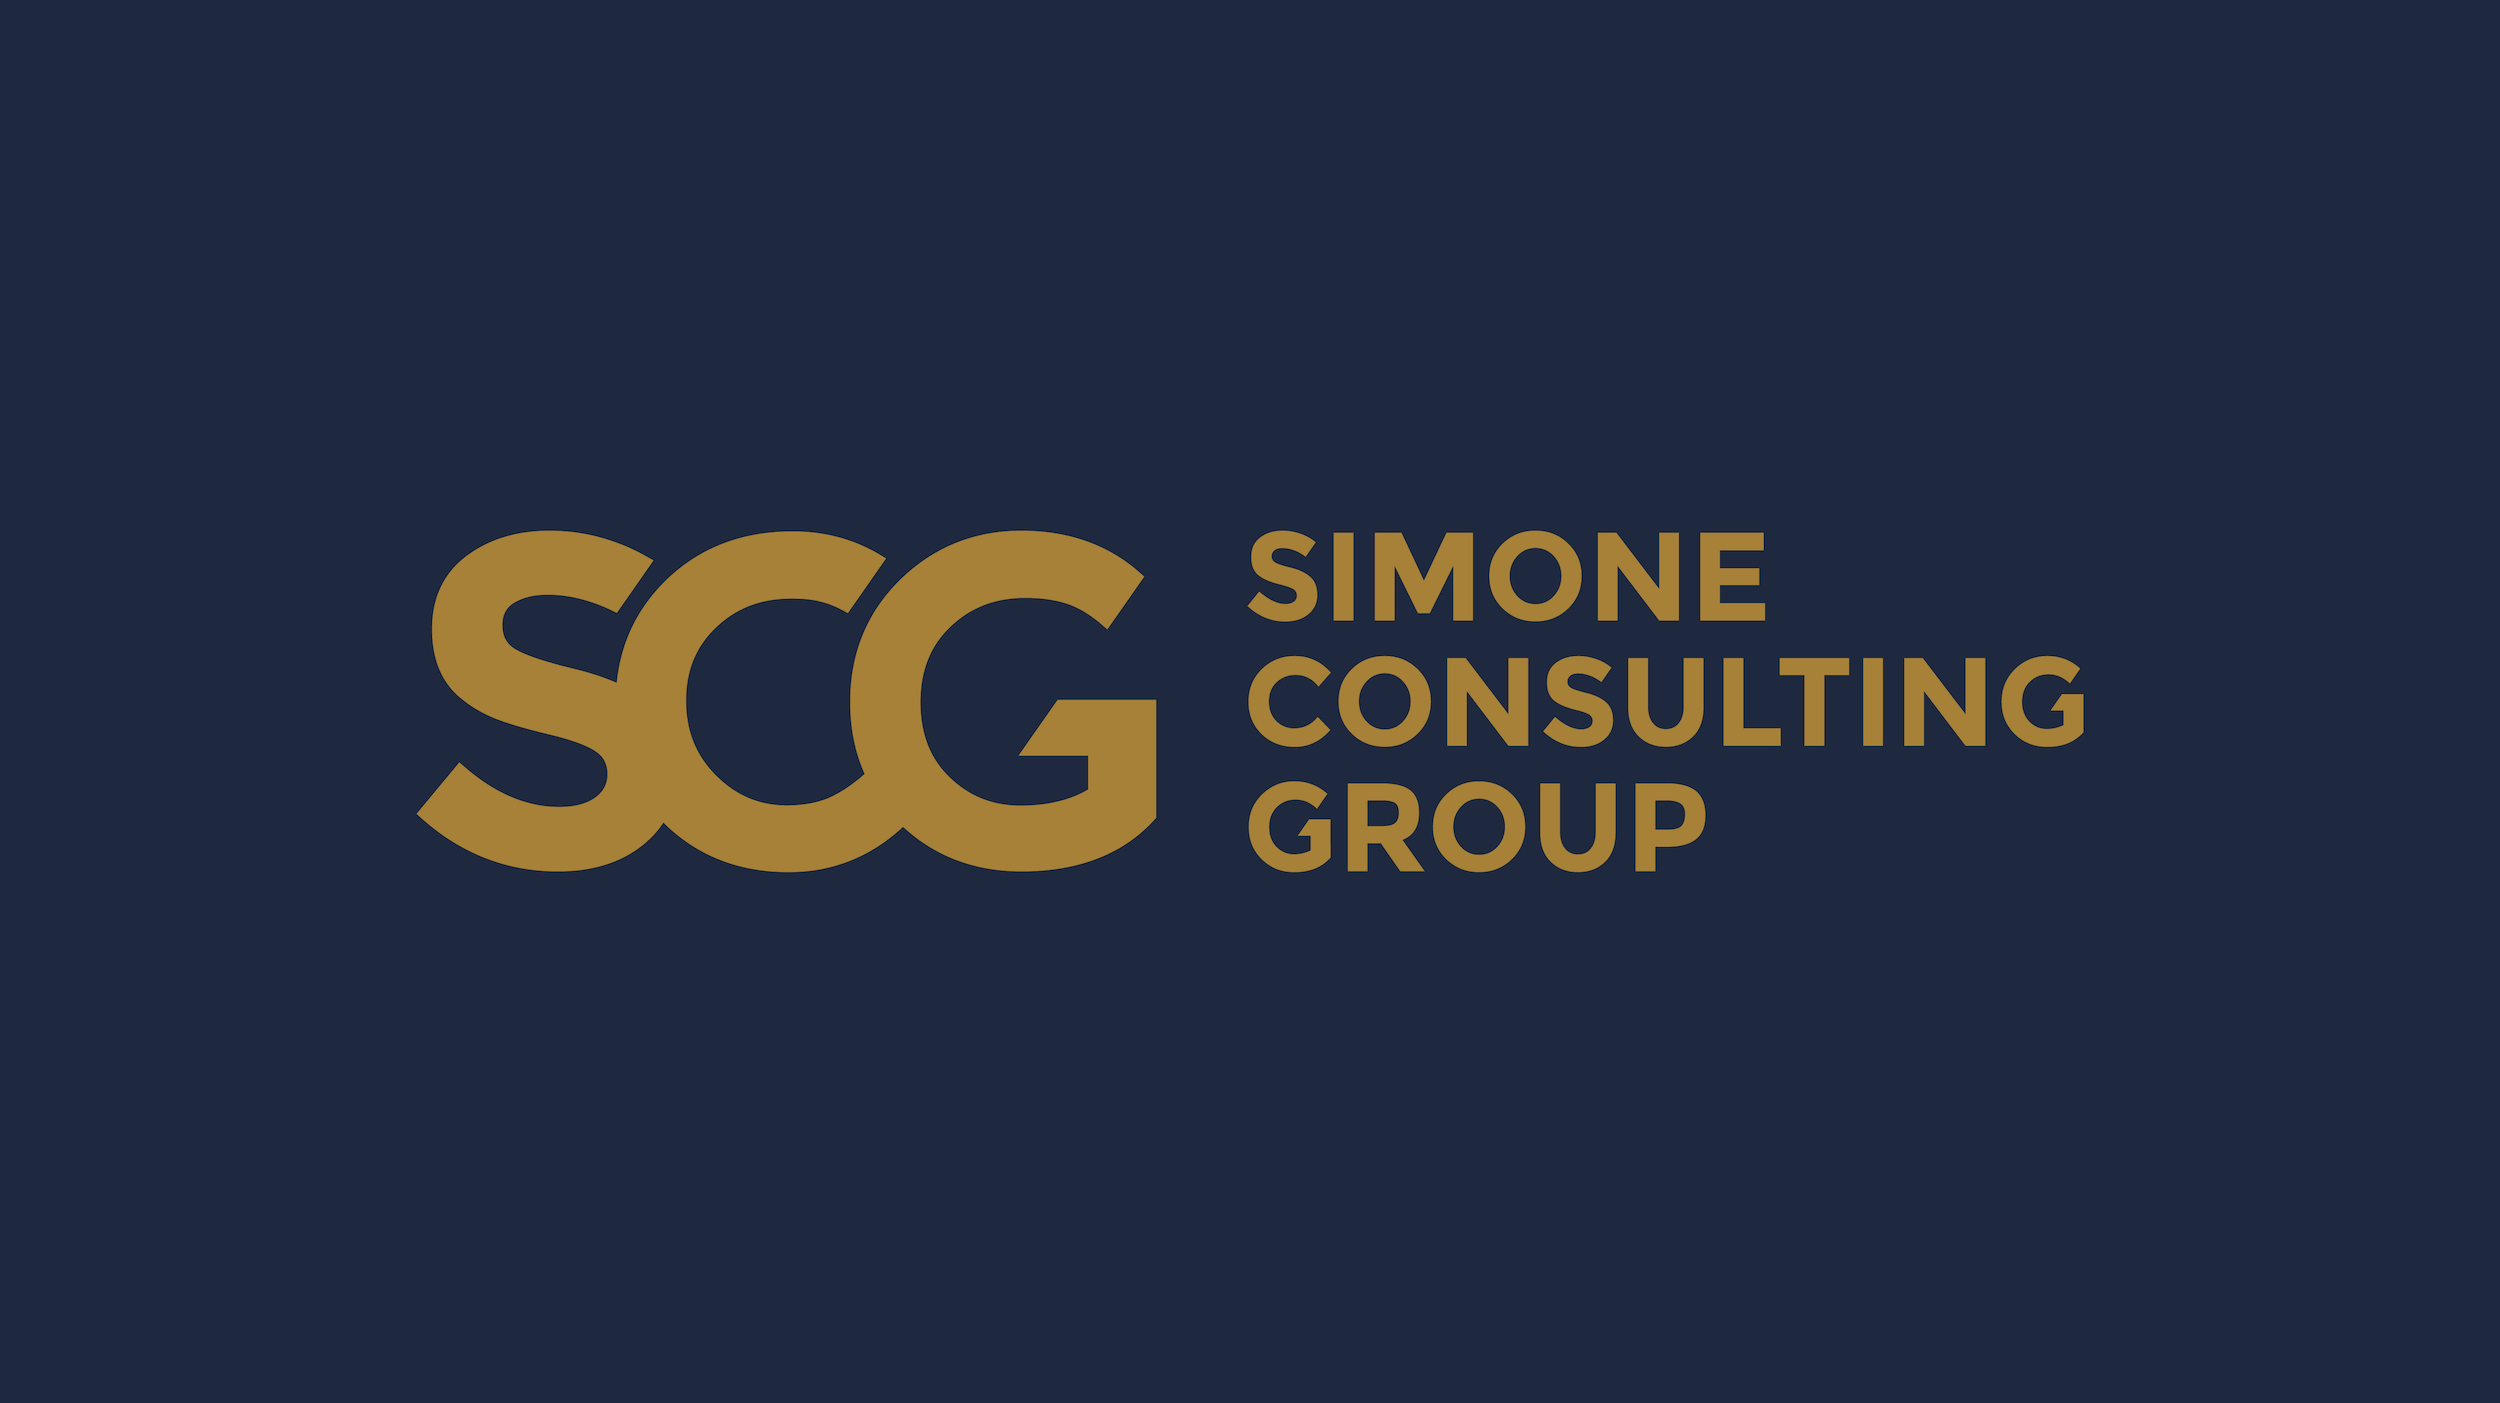 Simone Consulting Group